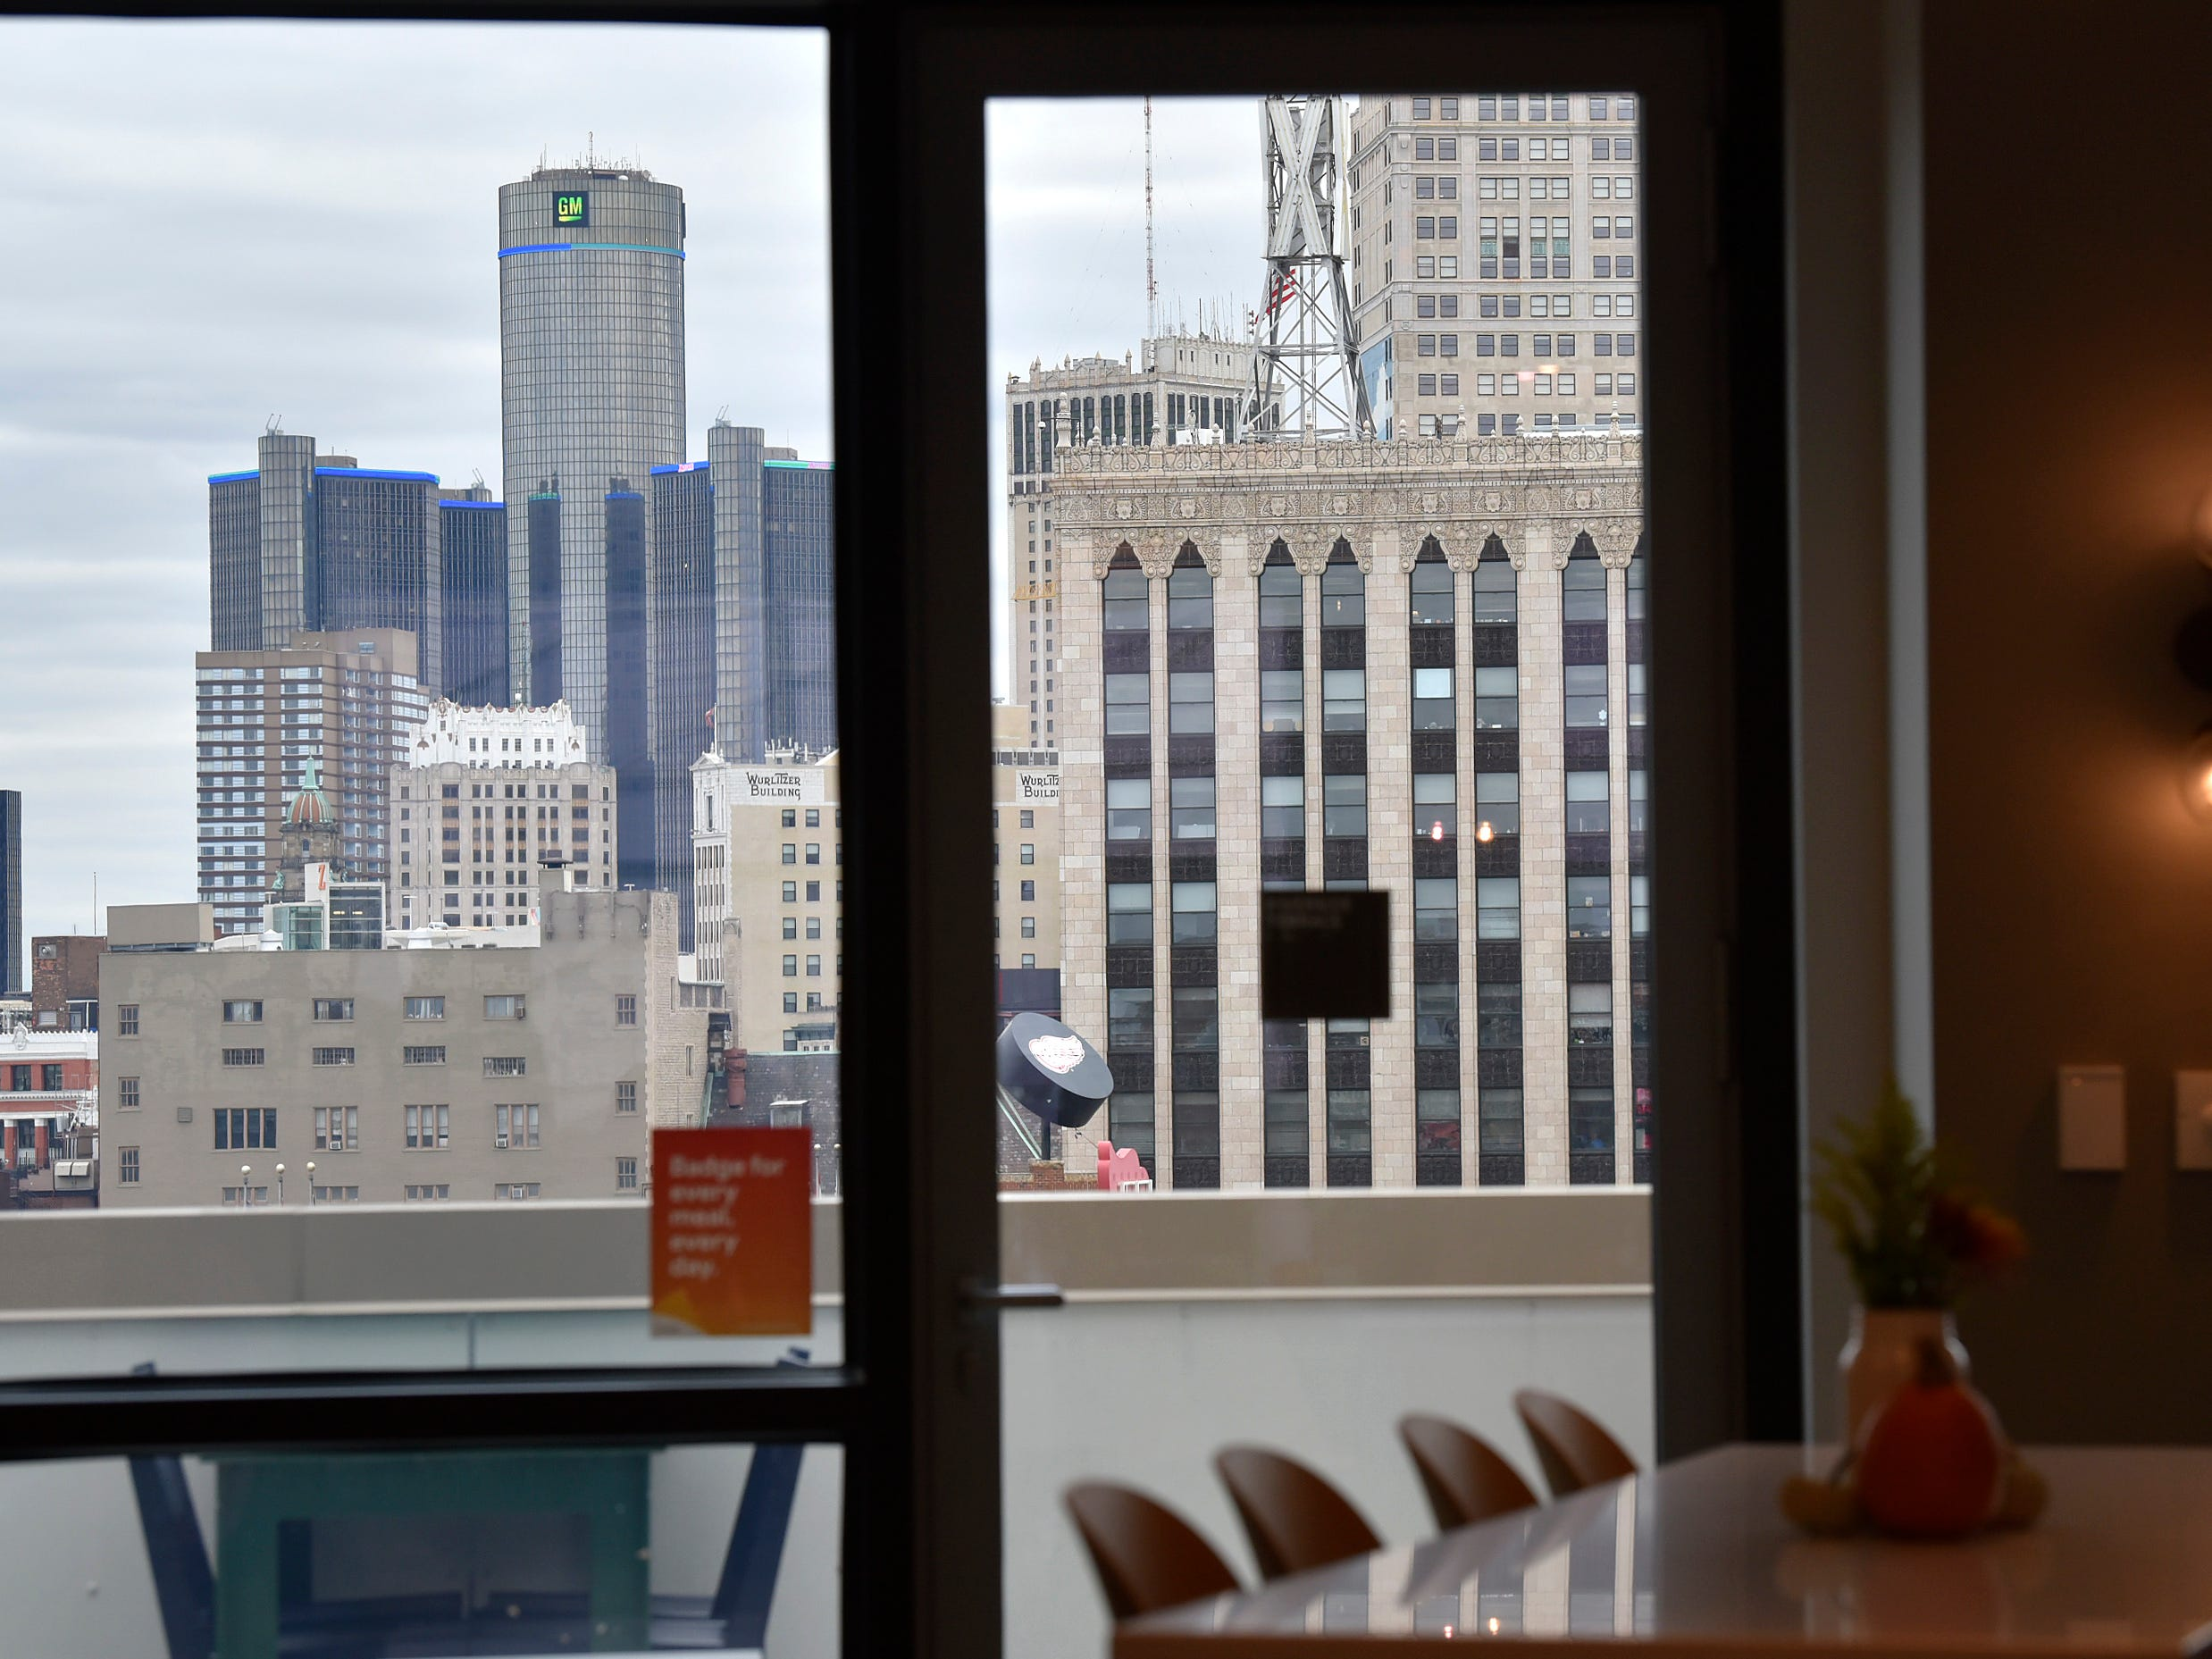 Googlers have a view of the Detroit skyline while working and / or eating in The Lafayette Cafe.